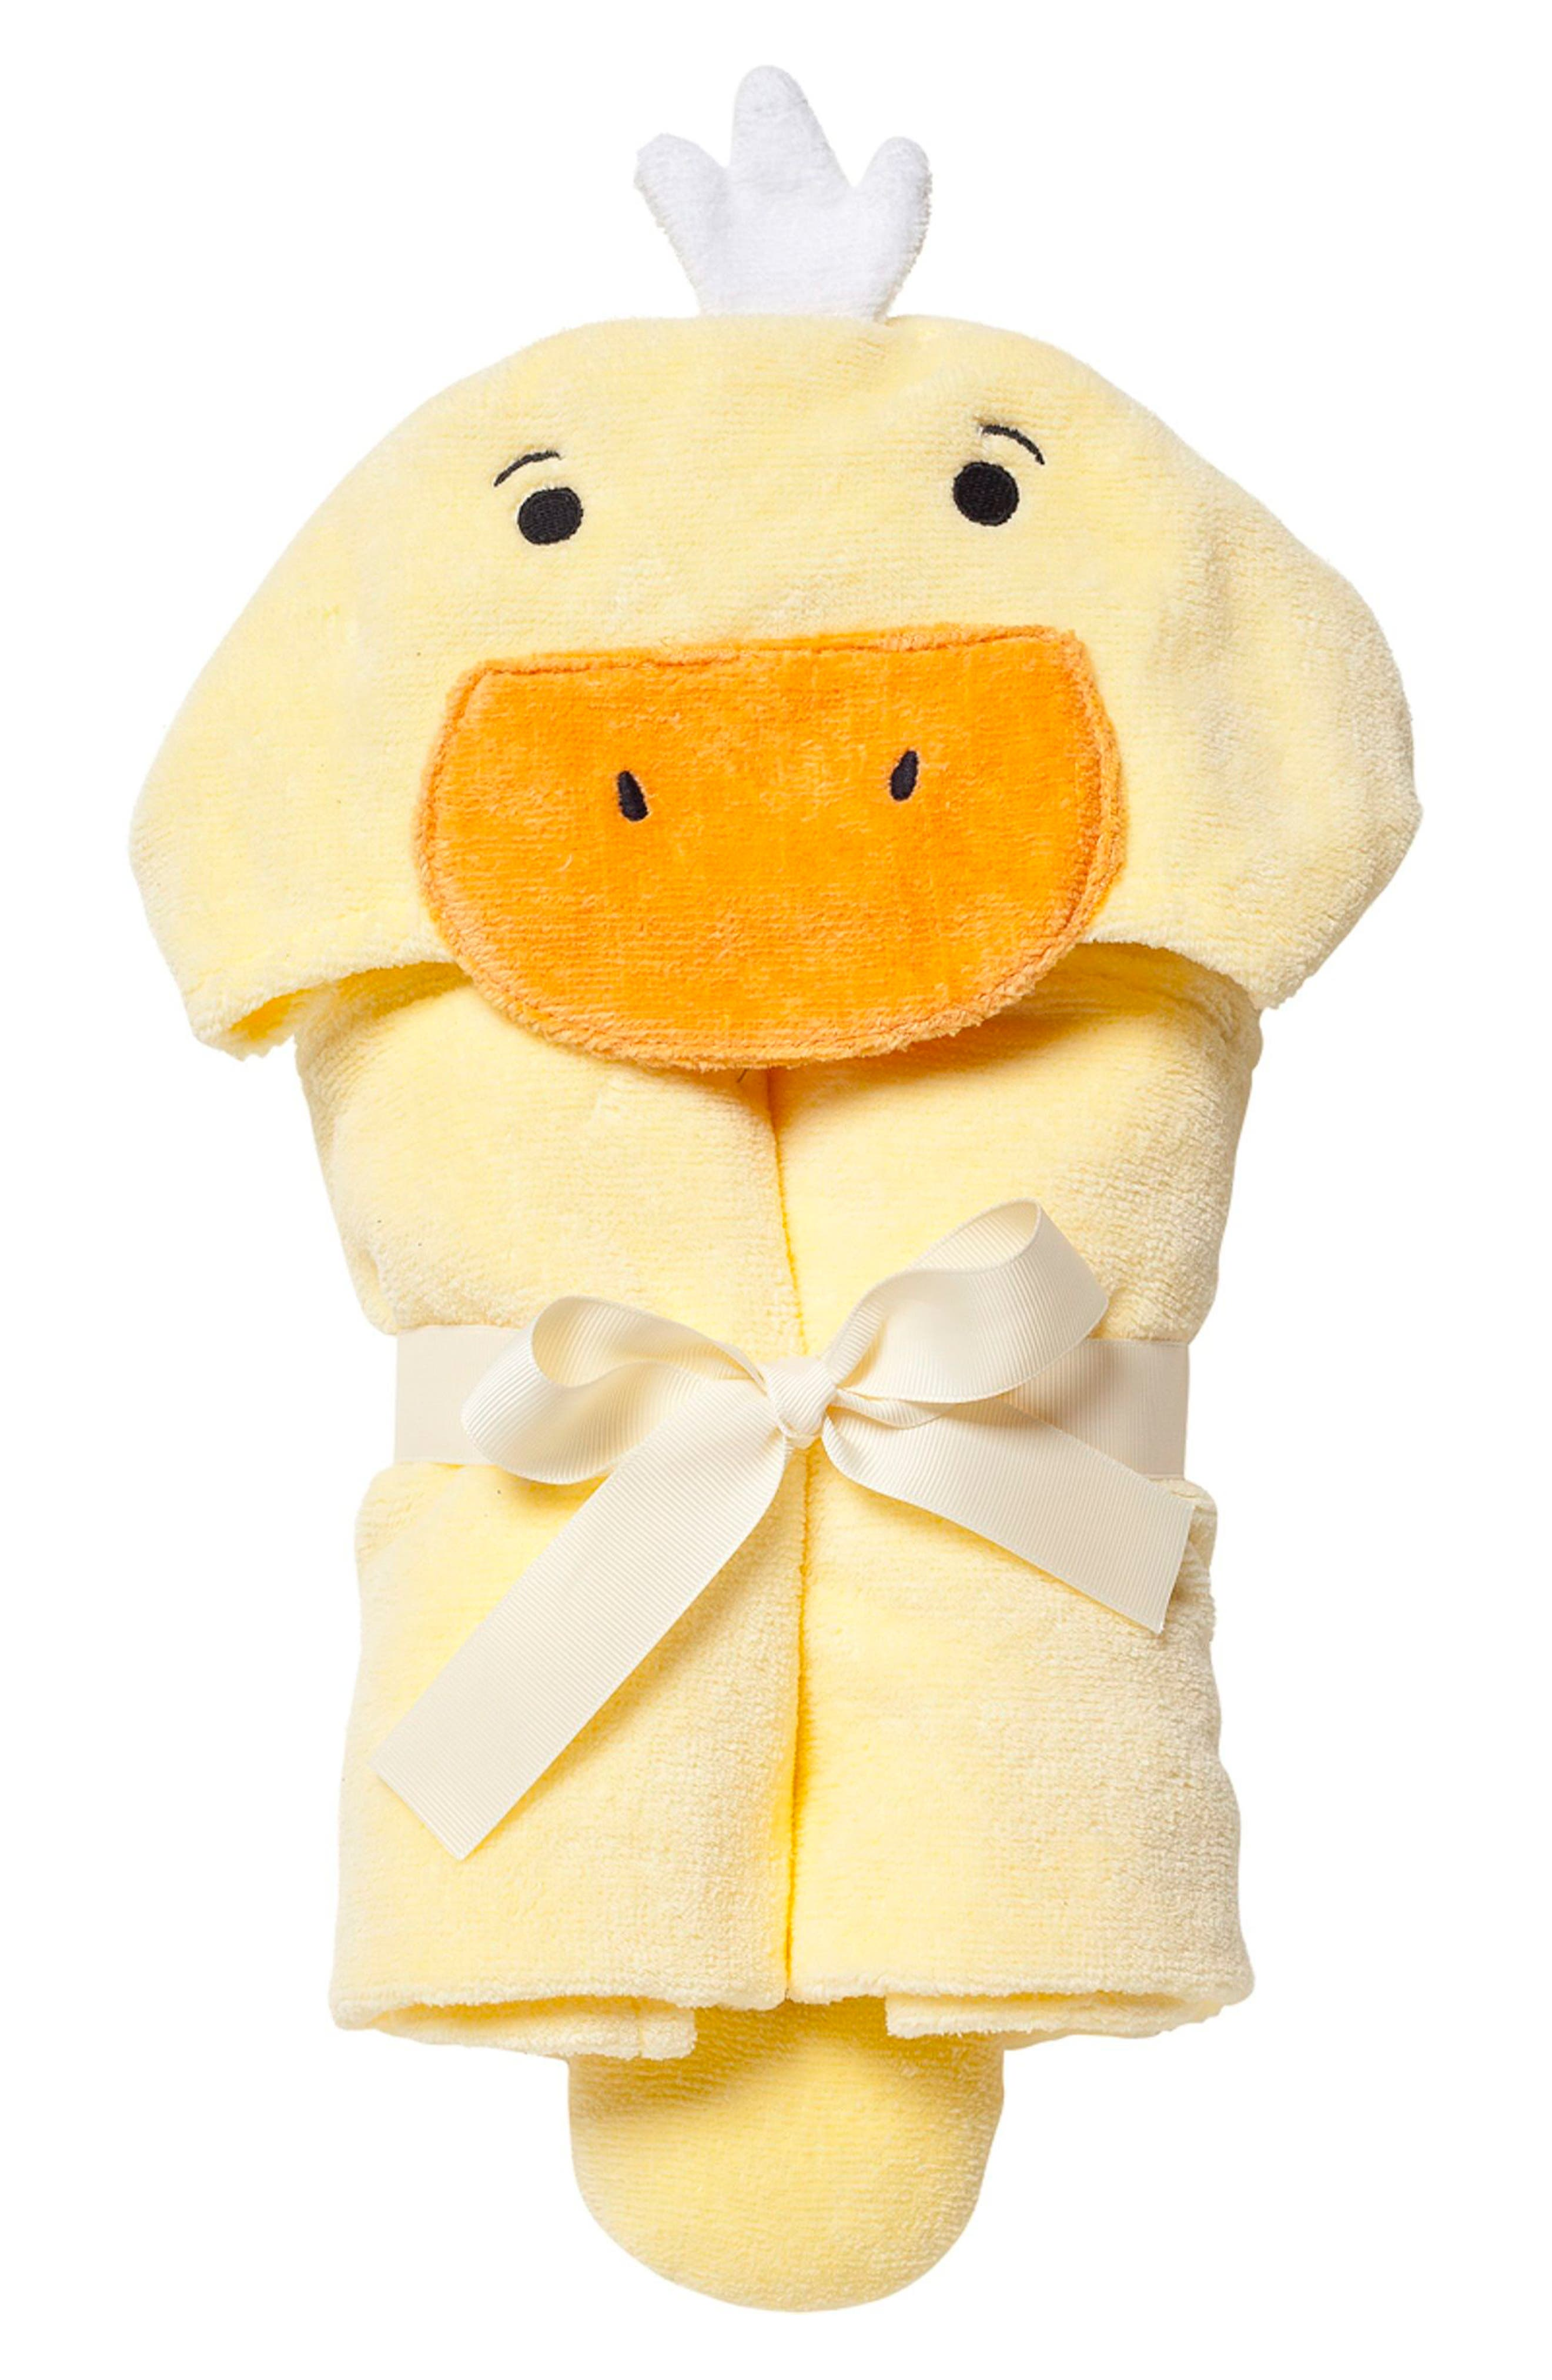 Terry Velour Hooded Duck Towel,                             Main thumbnail 1, color,                             DUCK